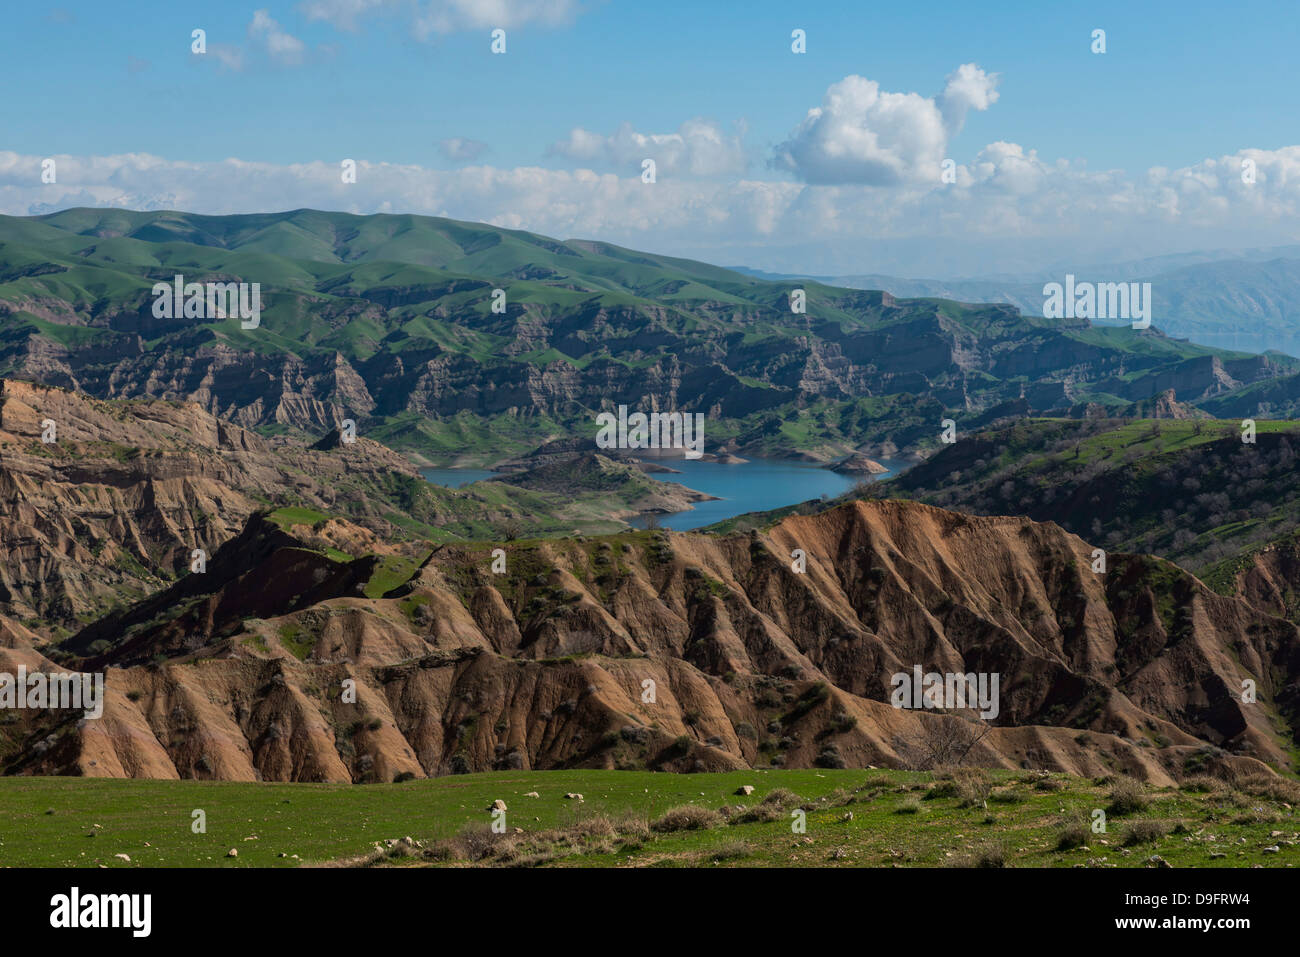 Green scenery around the Darbandikhan artificial lake on the border of Iran, Iraq Kurdistan, Iraq, Middle East - Stock Image